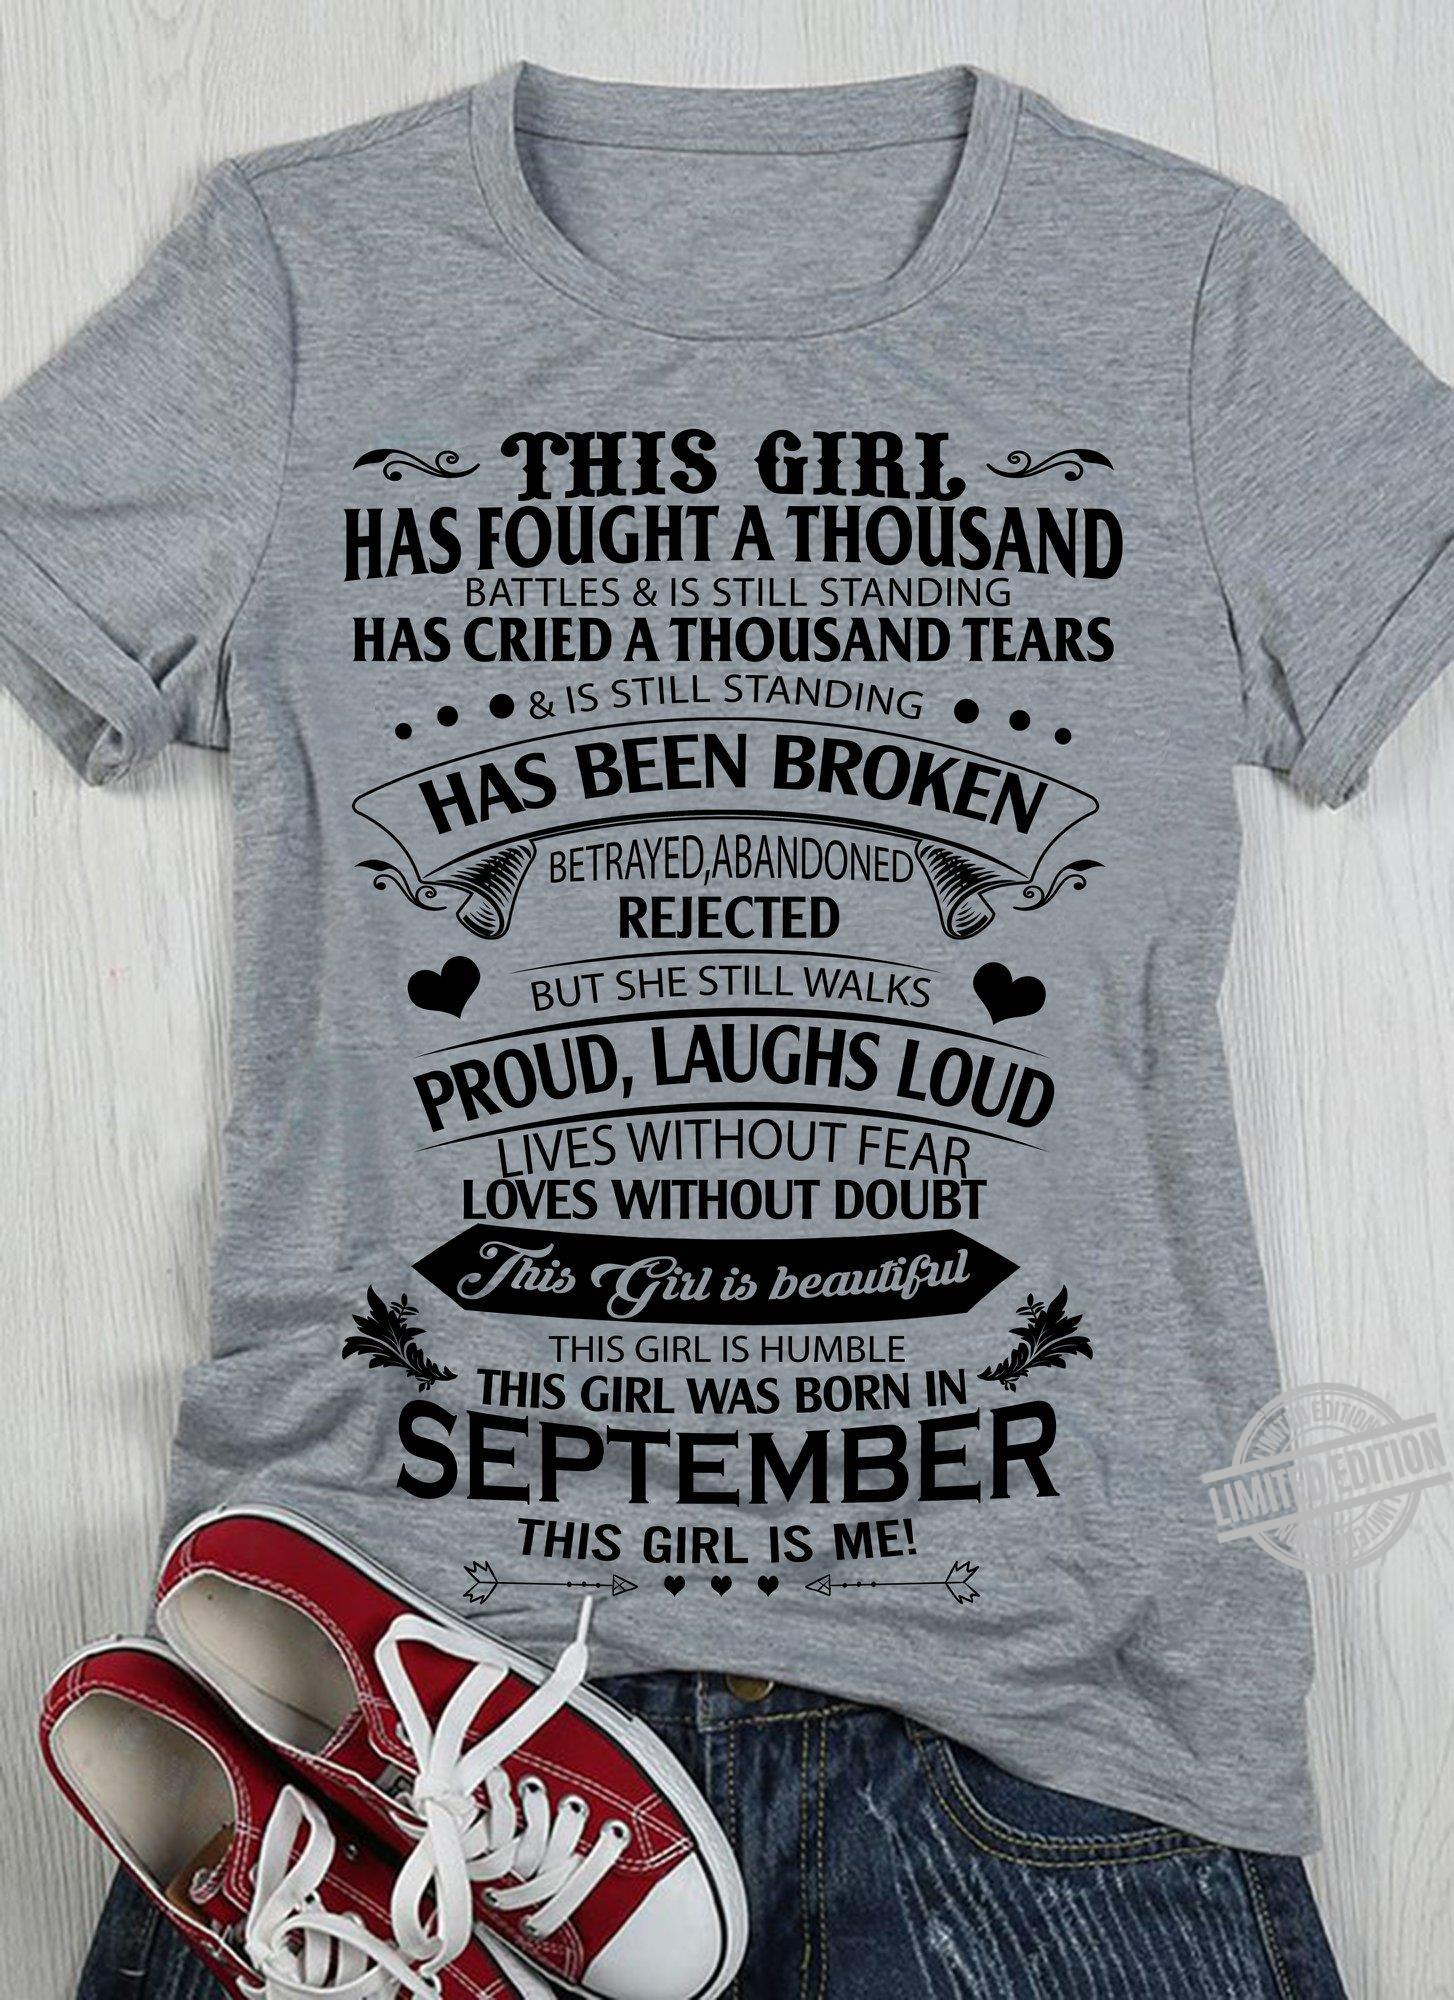 This Girl Has Fought A Thousand Battles & Is Still Standing Has Cried A Thousand Tears & Is Still Standing Has Been Broken This Girl Was Boen In September This Girl Is Me Shirt